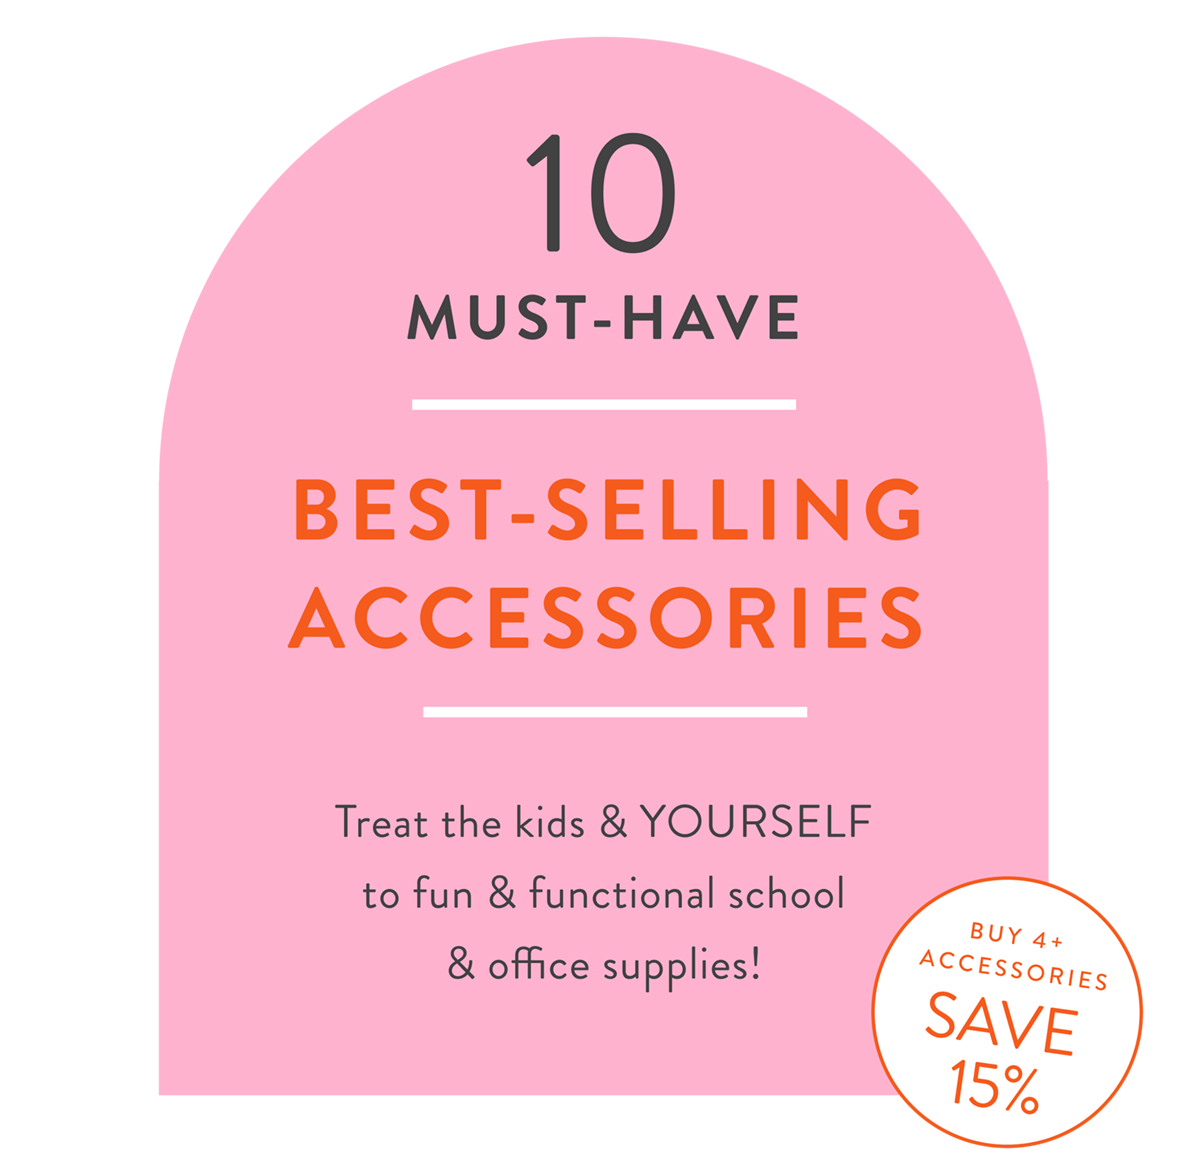 BEST-SELLING ACCESSORIES >